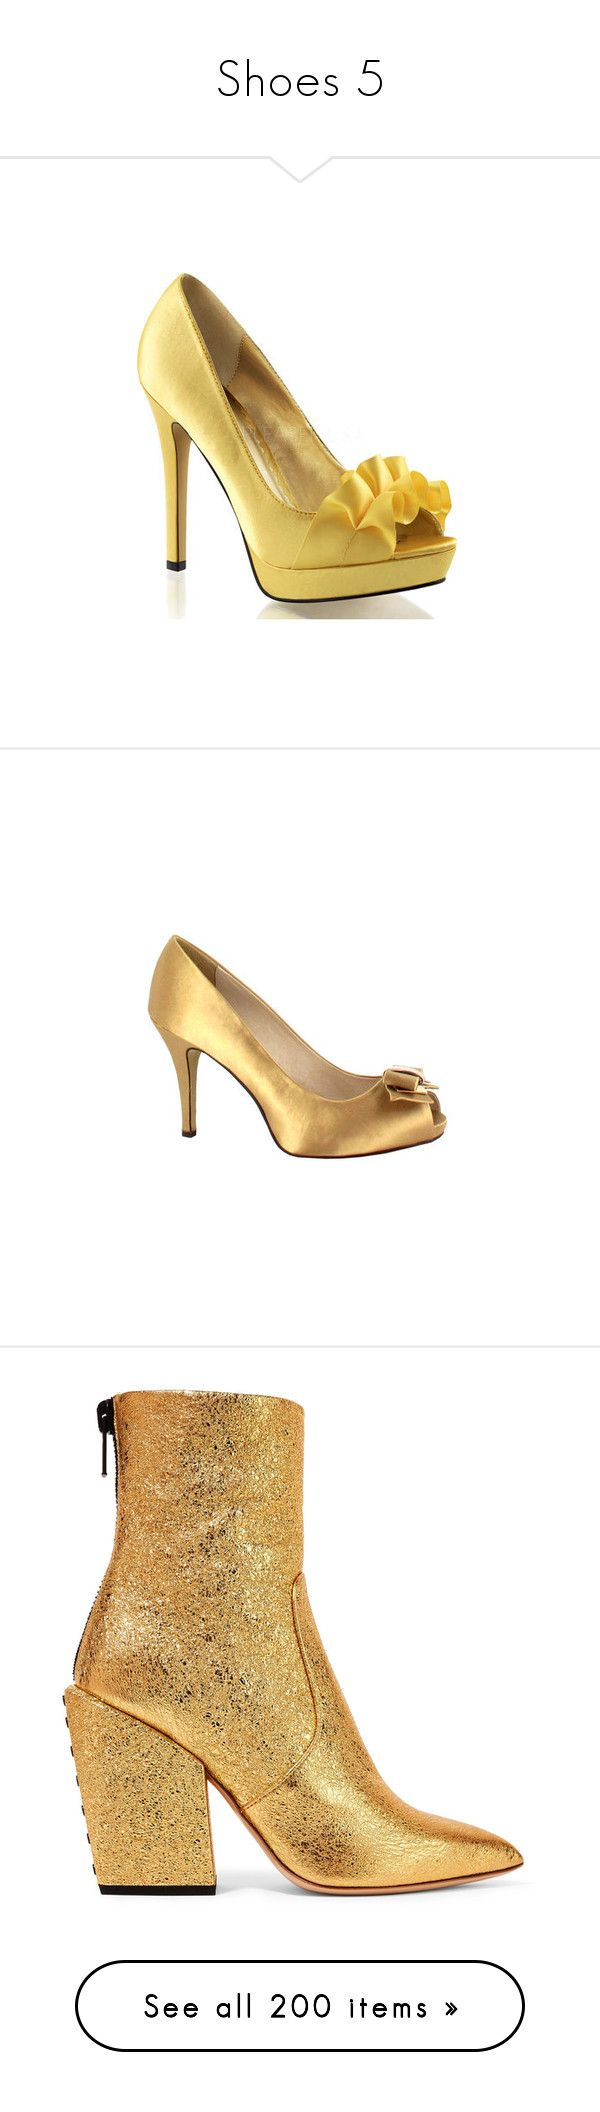 """""""Shoes 5"""" by littlelunna ❤ liked on Polyvore featuring shoes, pumps, heels, dresses, yellow, high heel pumps, high heel shoes, open-toe pumps, peep toe pumps and platform stilettos"""